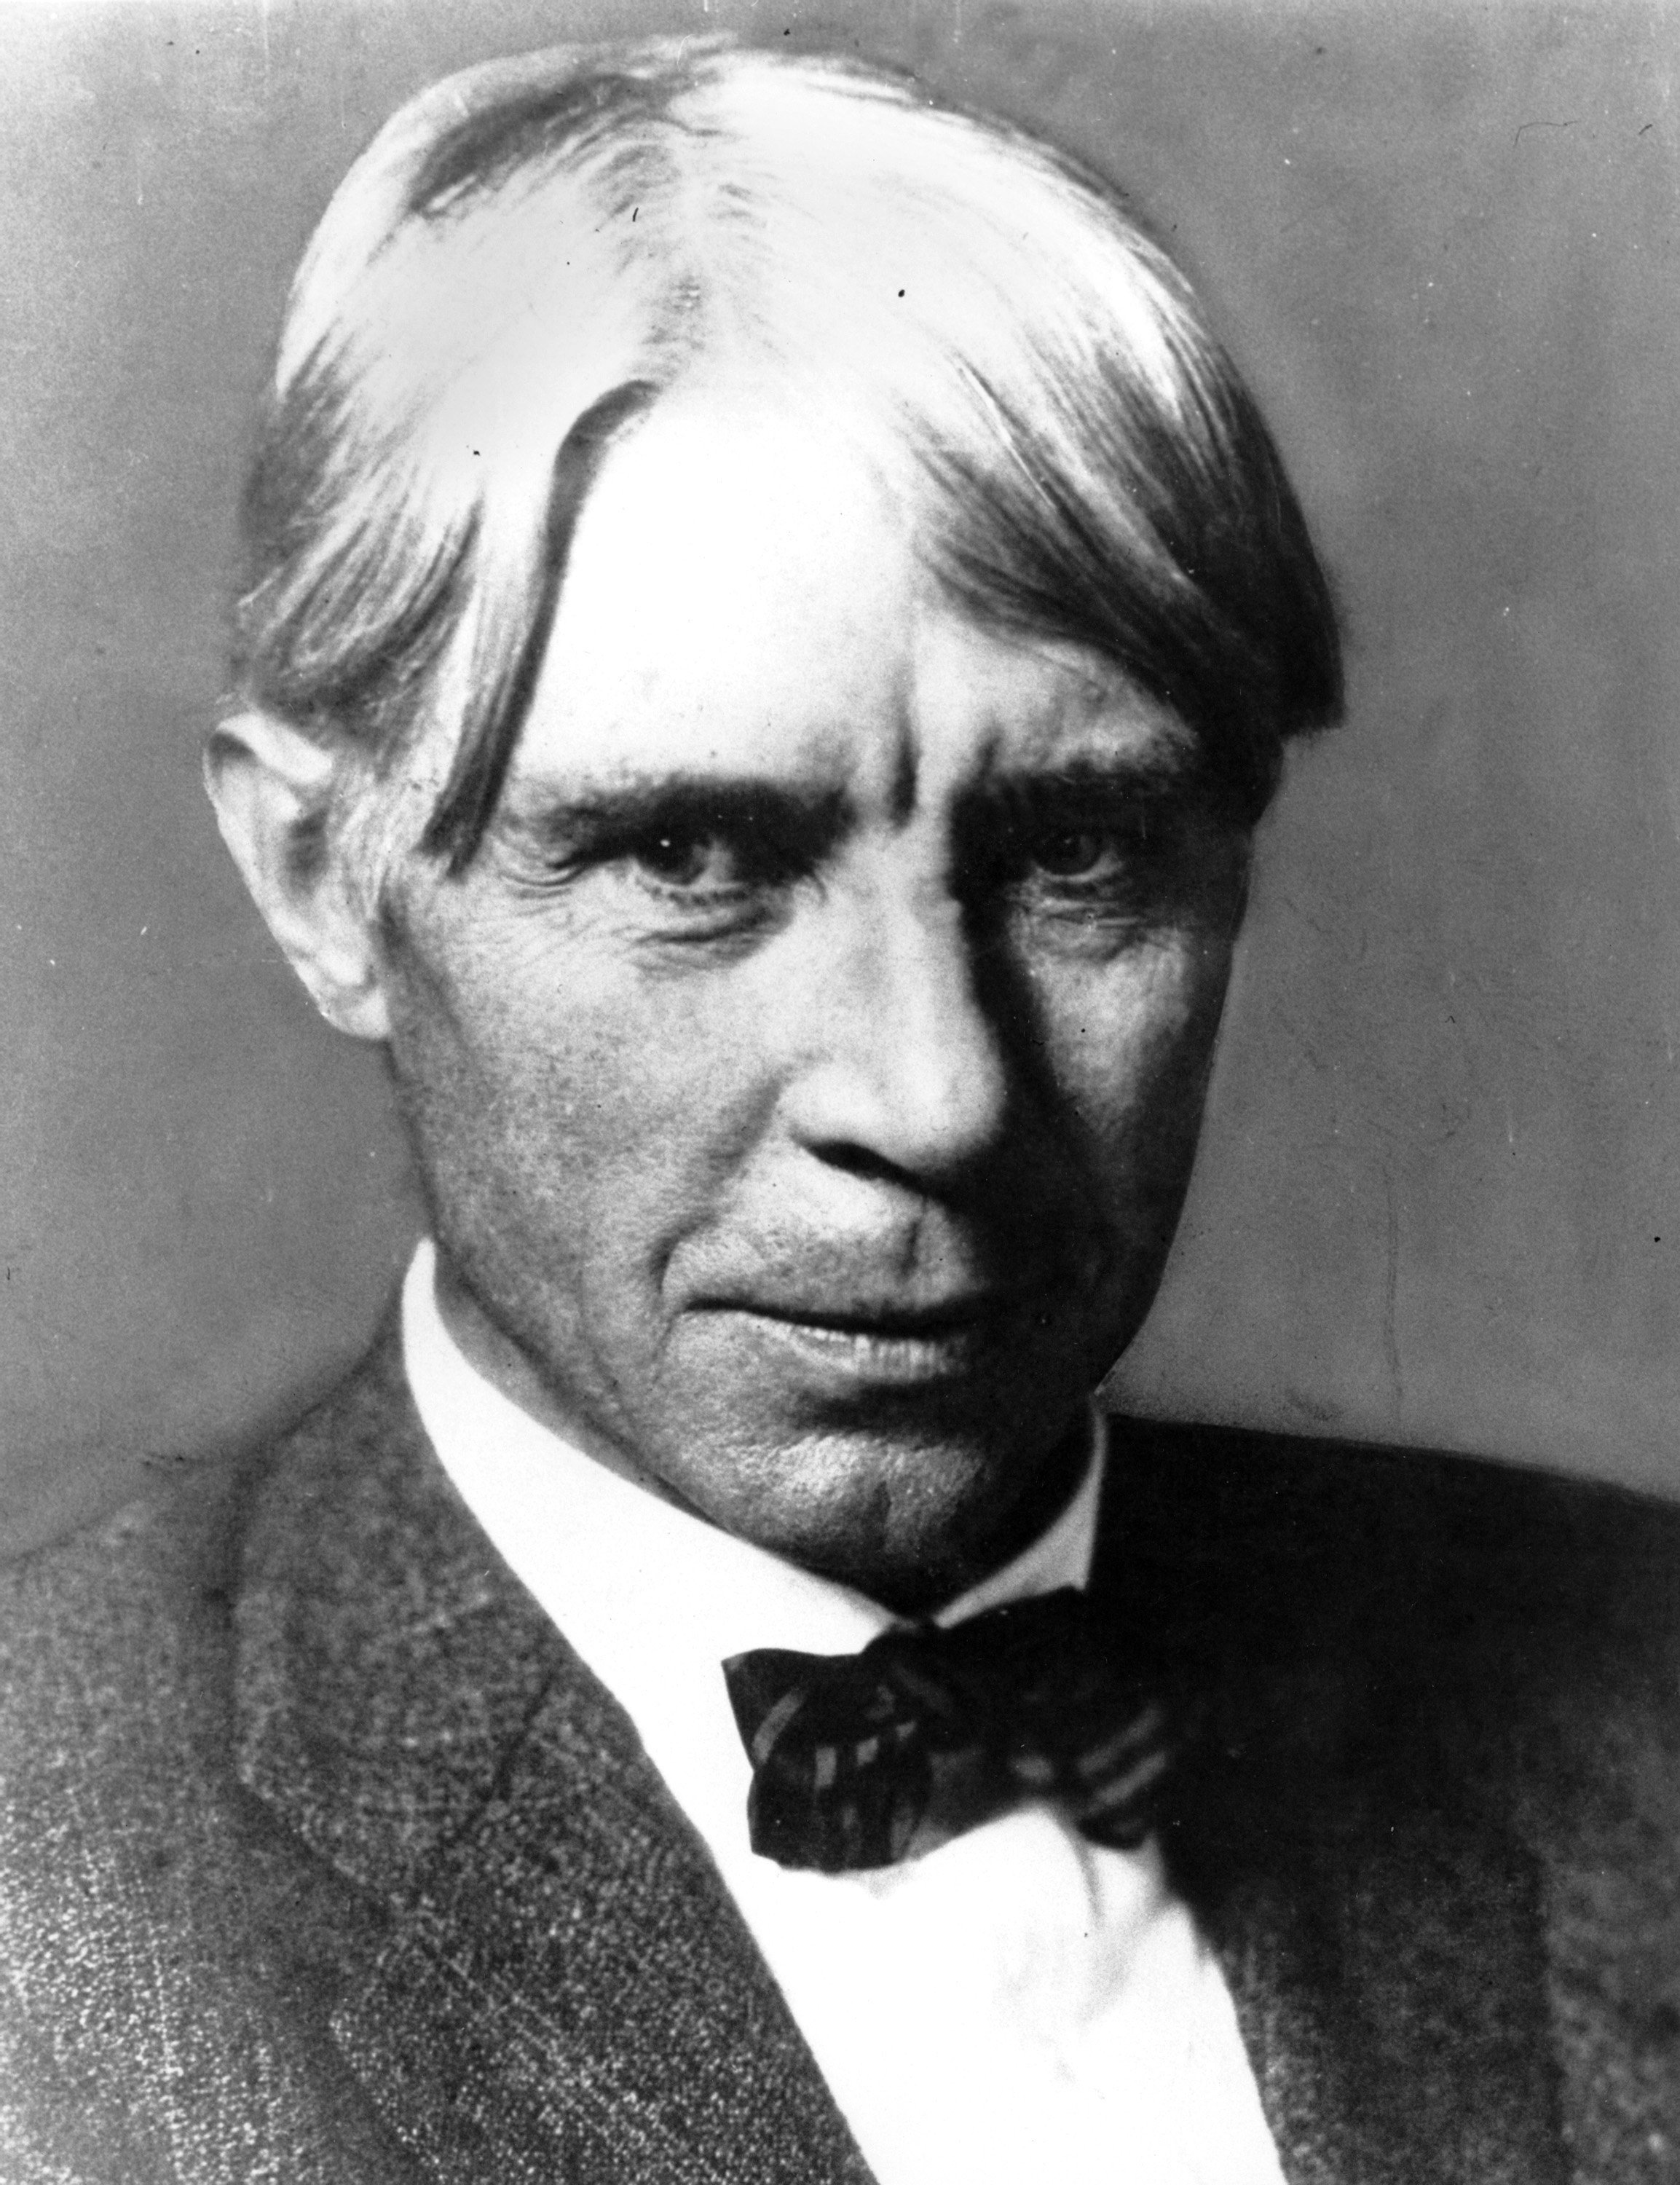 All Stories by Carl Sandburg - The Atlantic